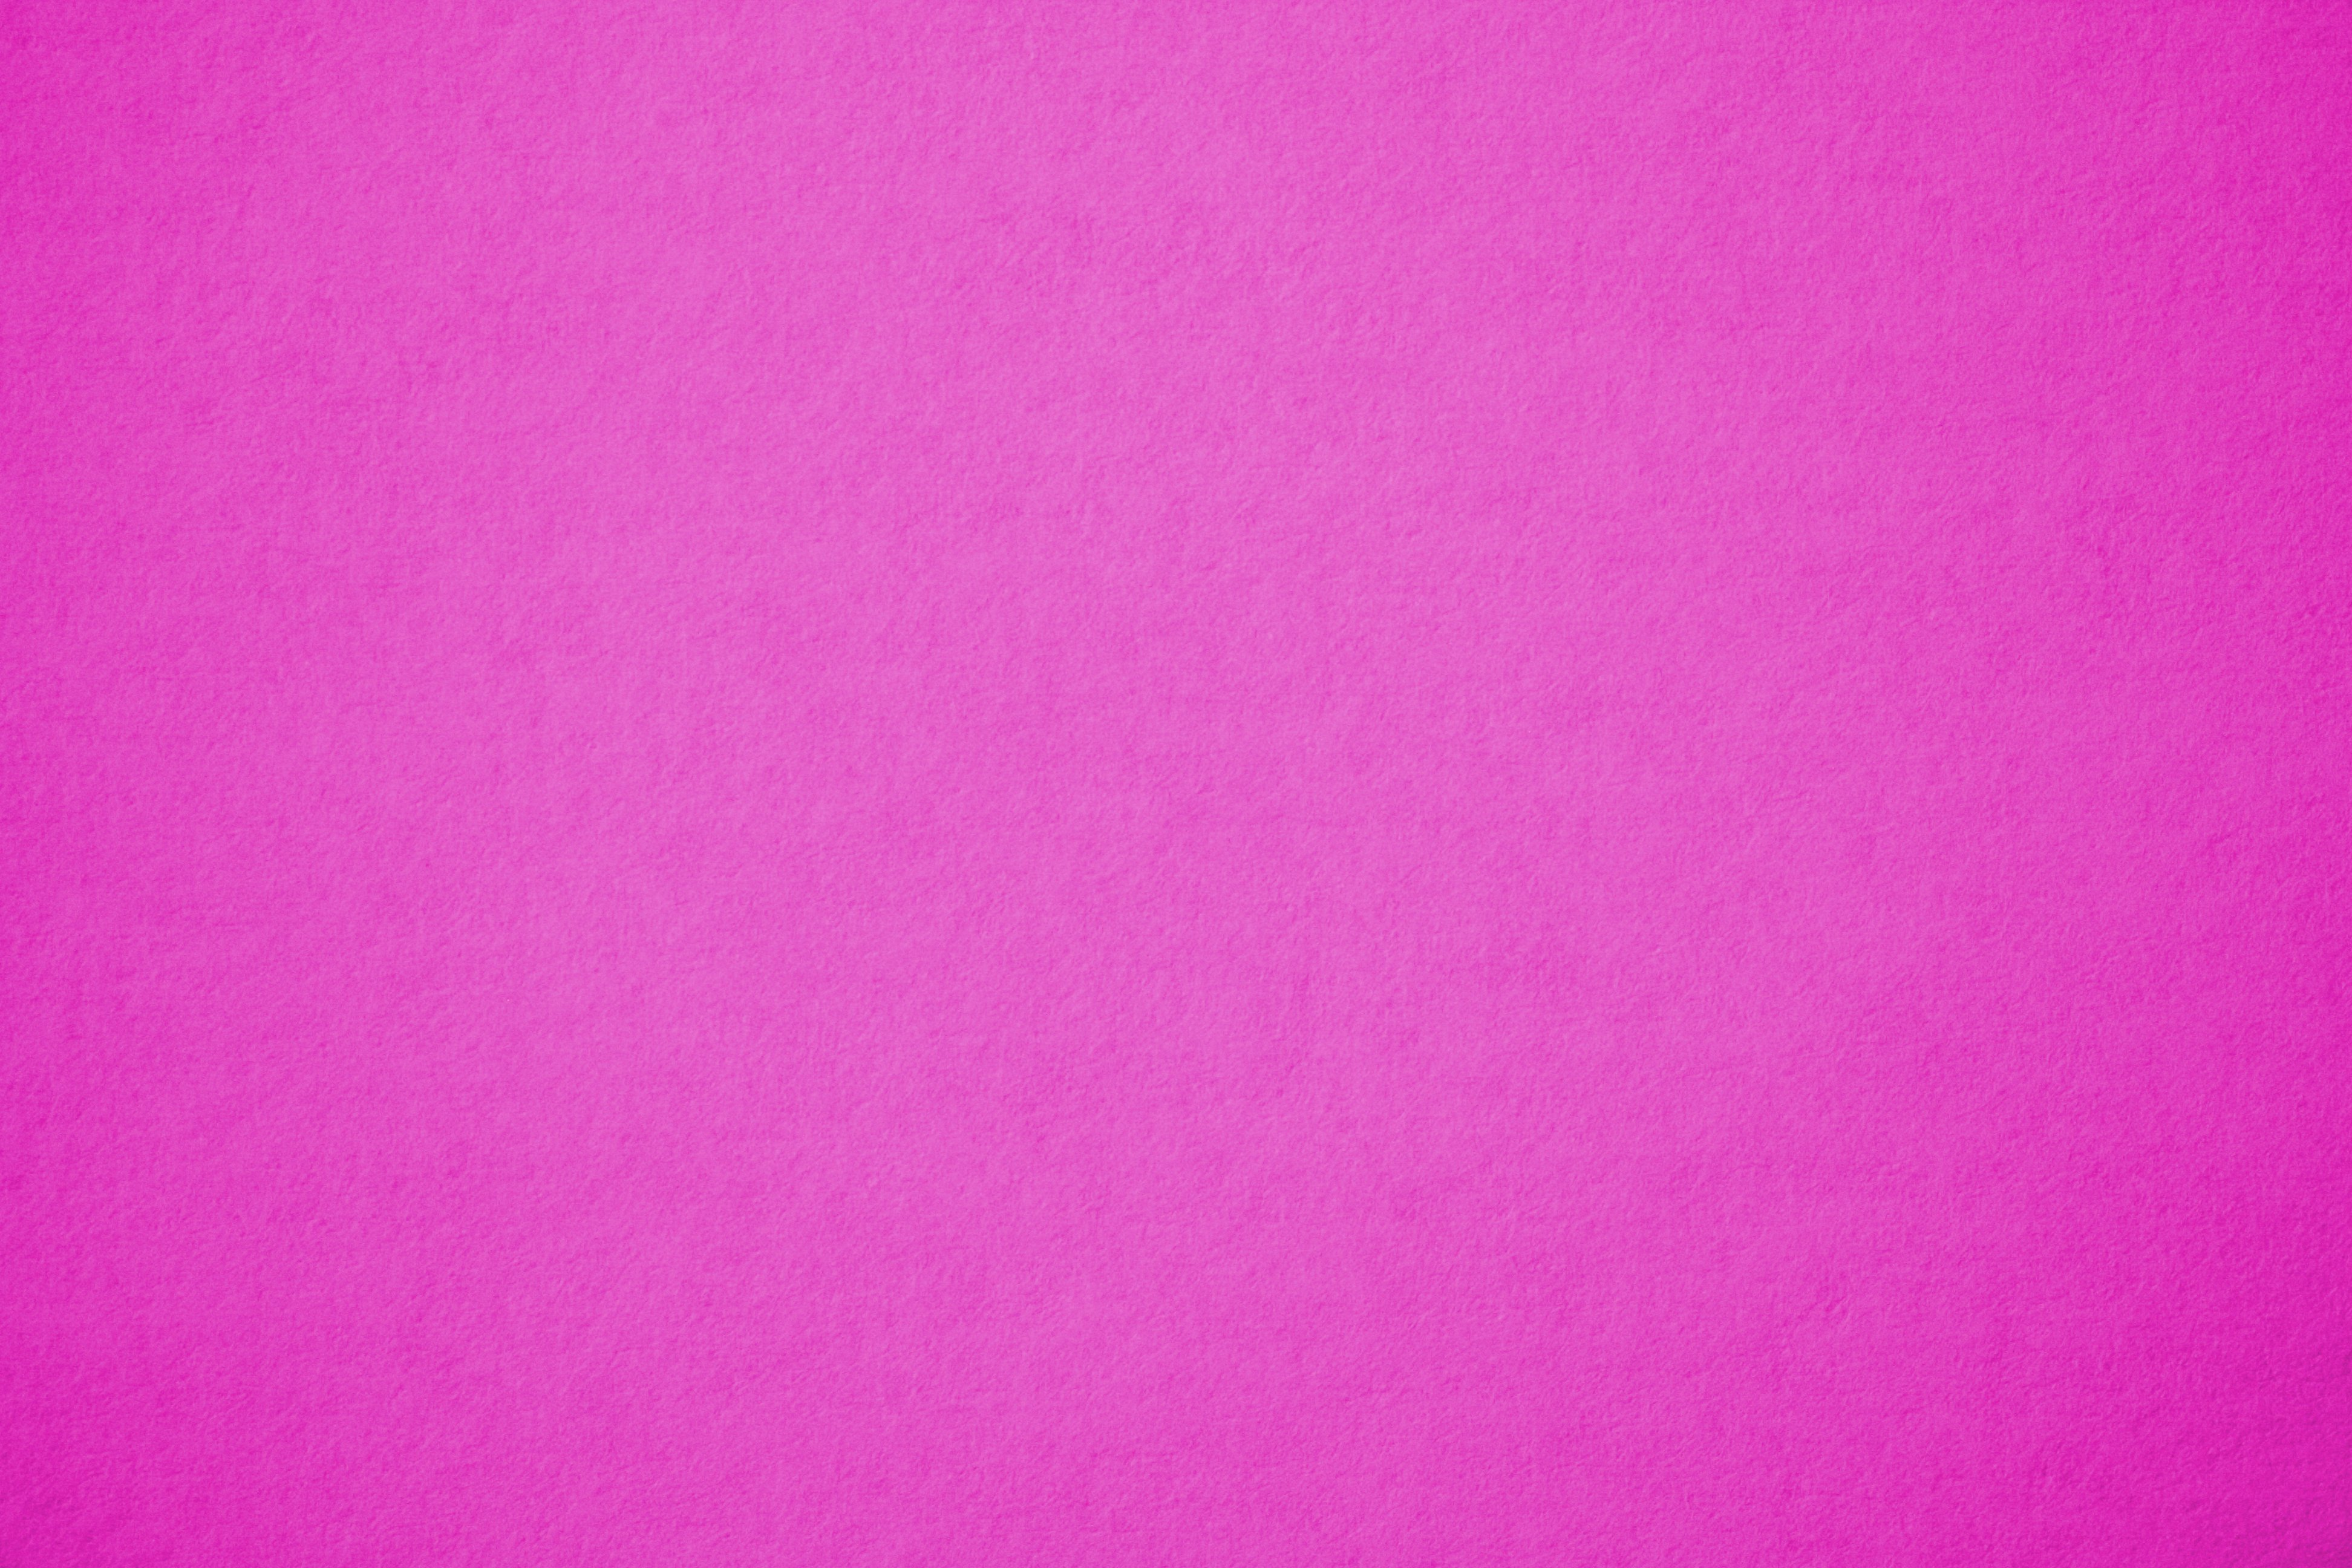 Hot Pink Paper Texture Picture Free Photograph Photos